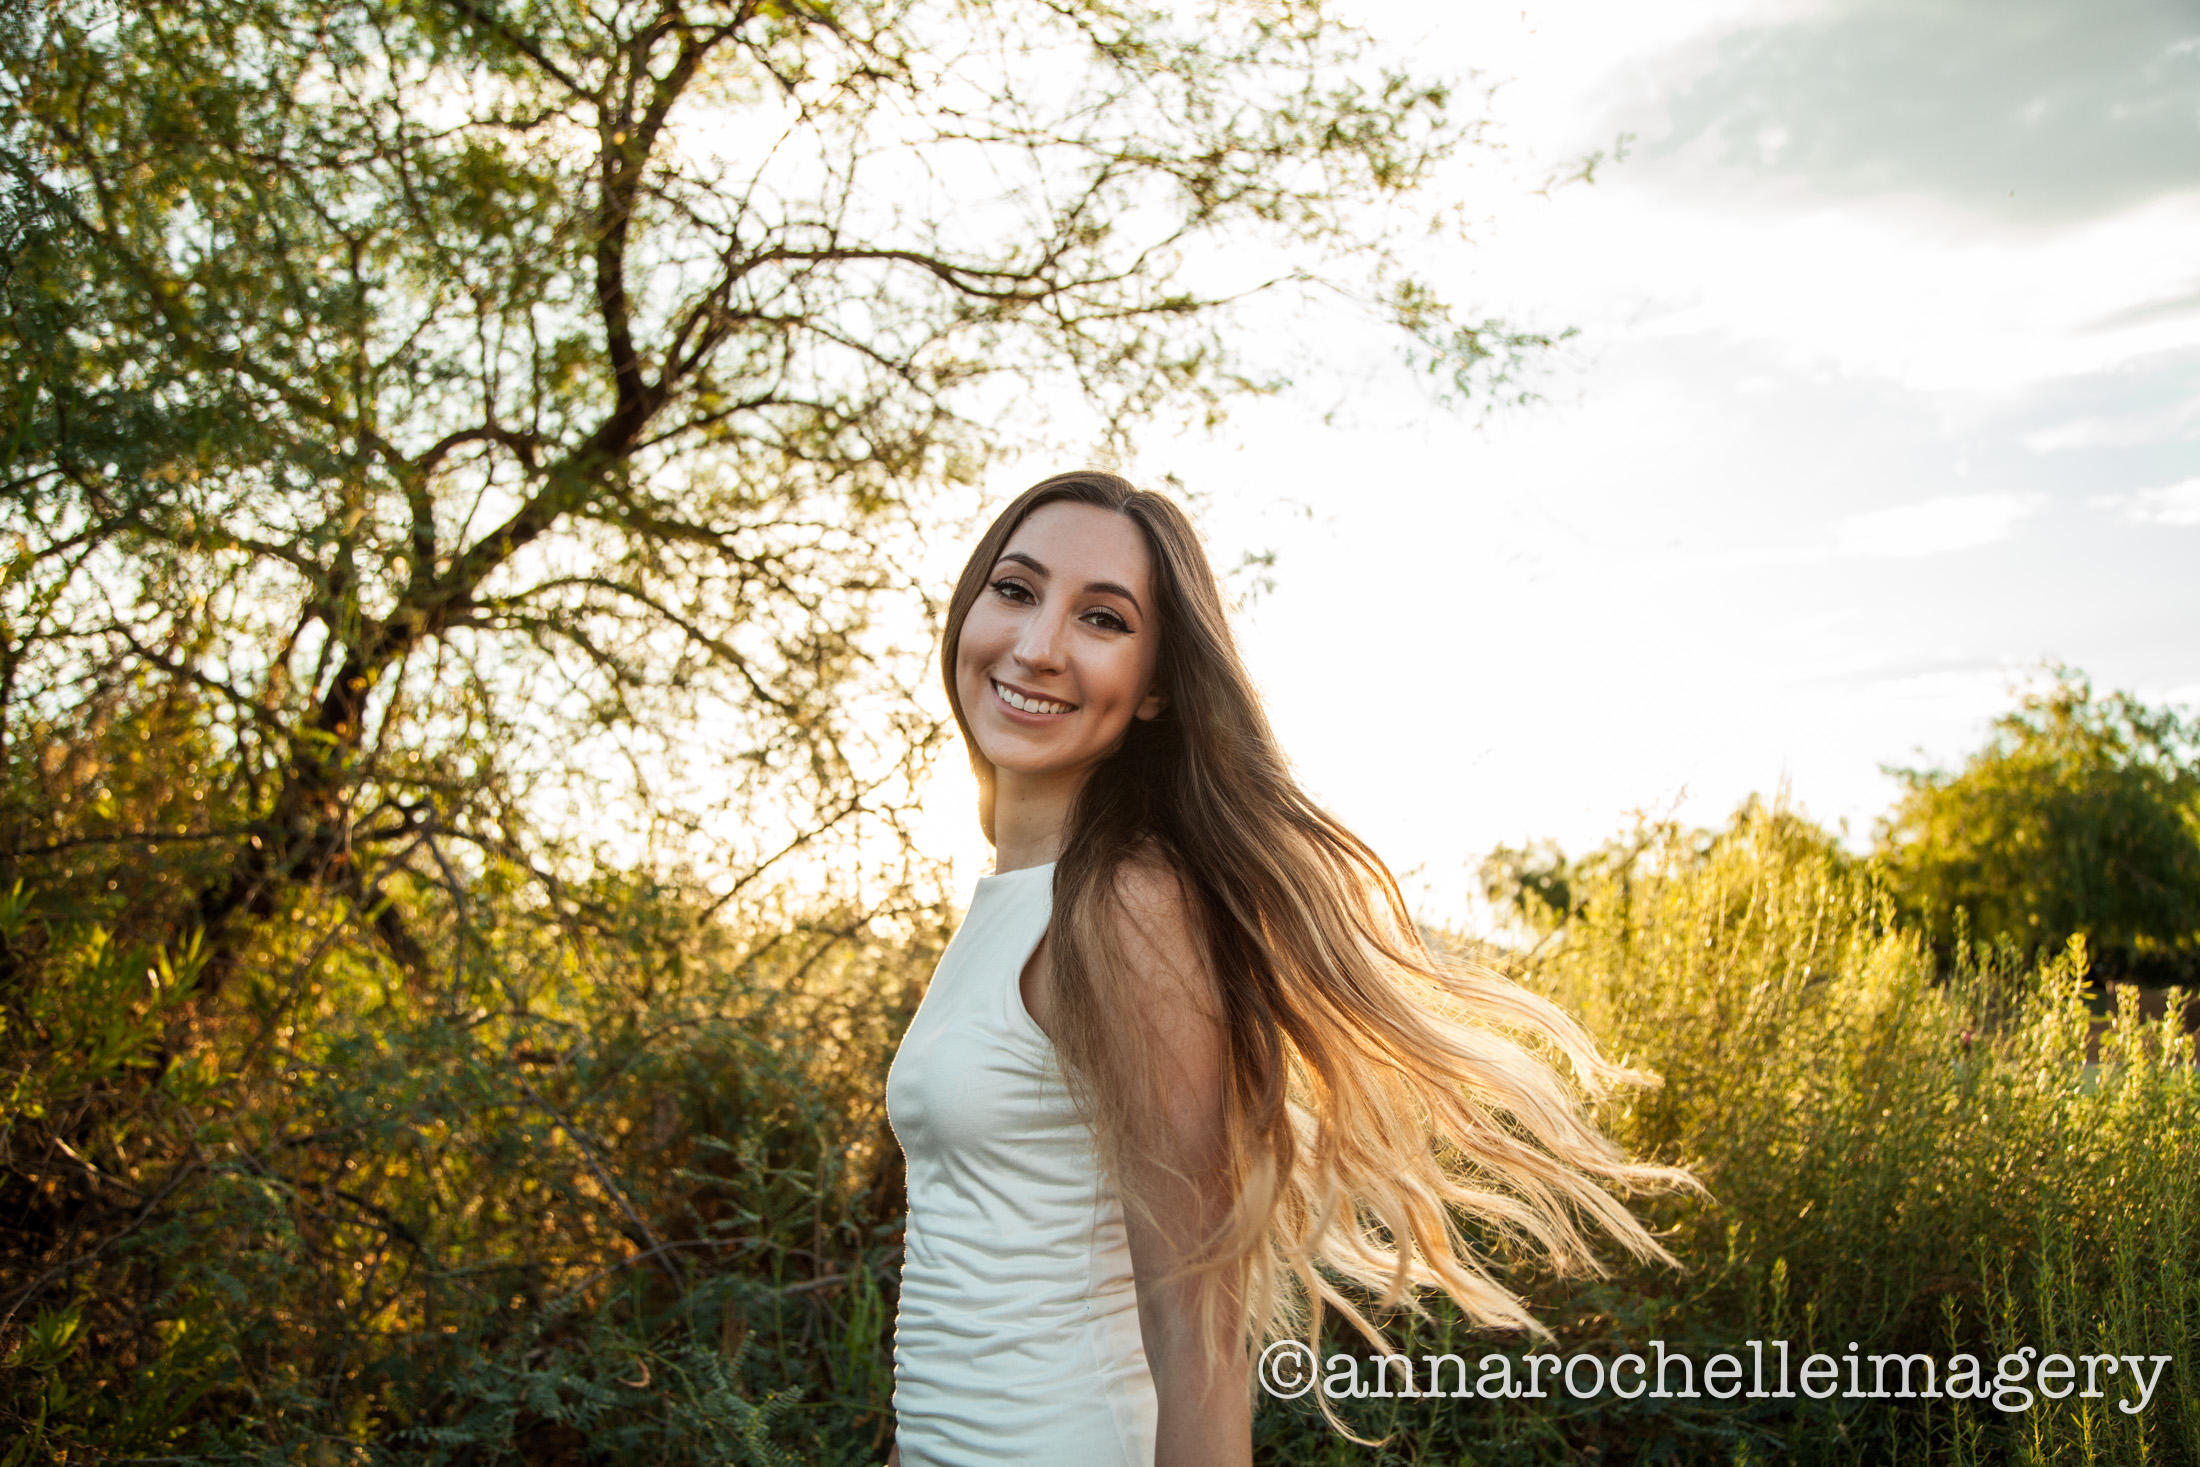 creative-senior-portraits-gilbert.jpg